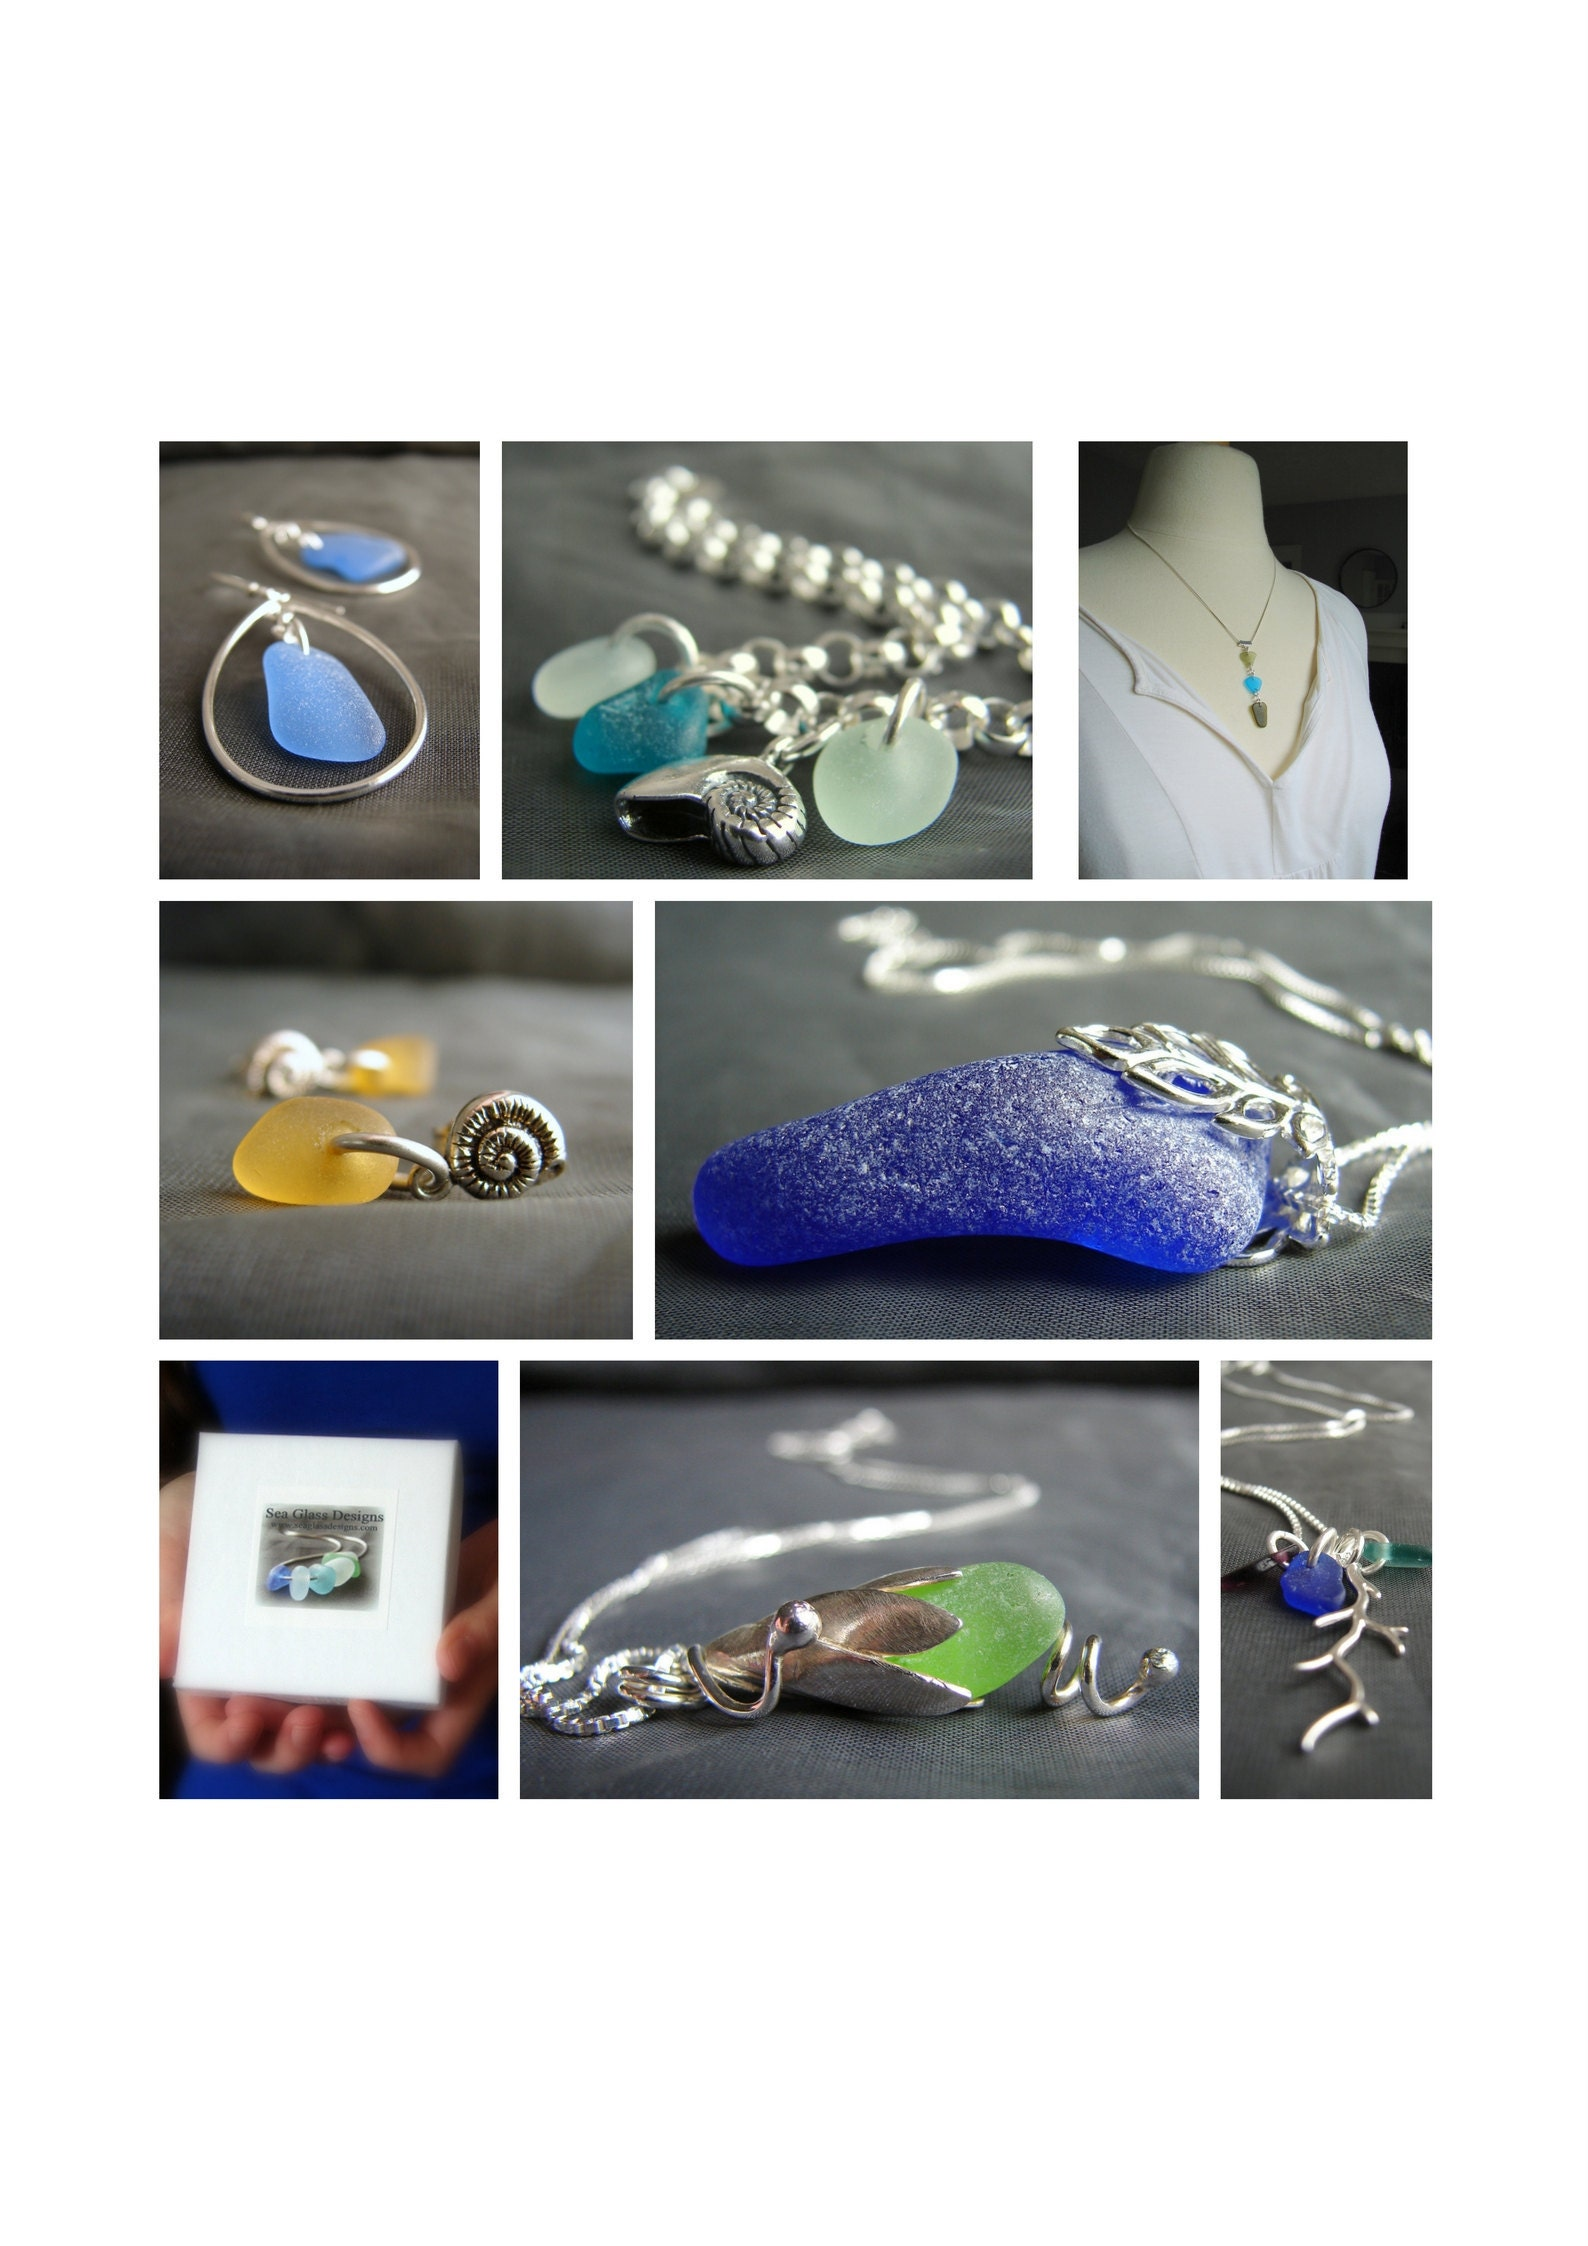 Sea glass jewelry by sea glass designs, nova scotia